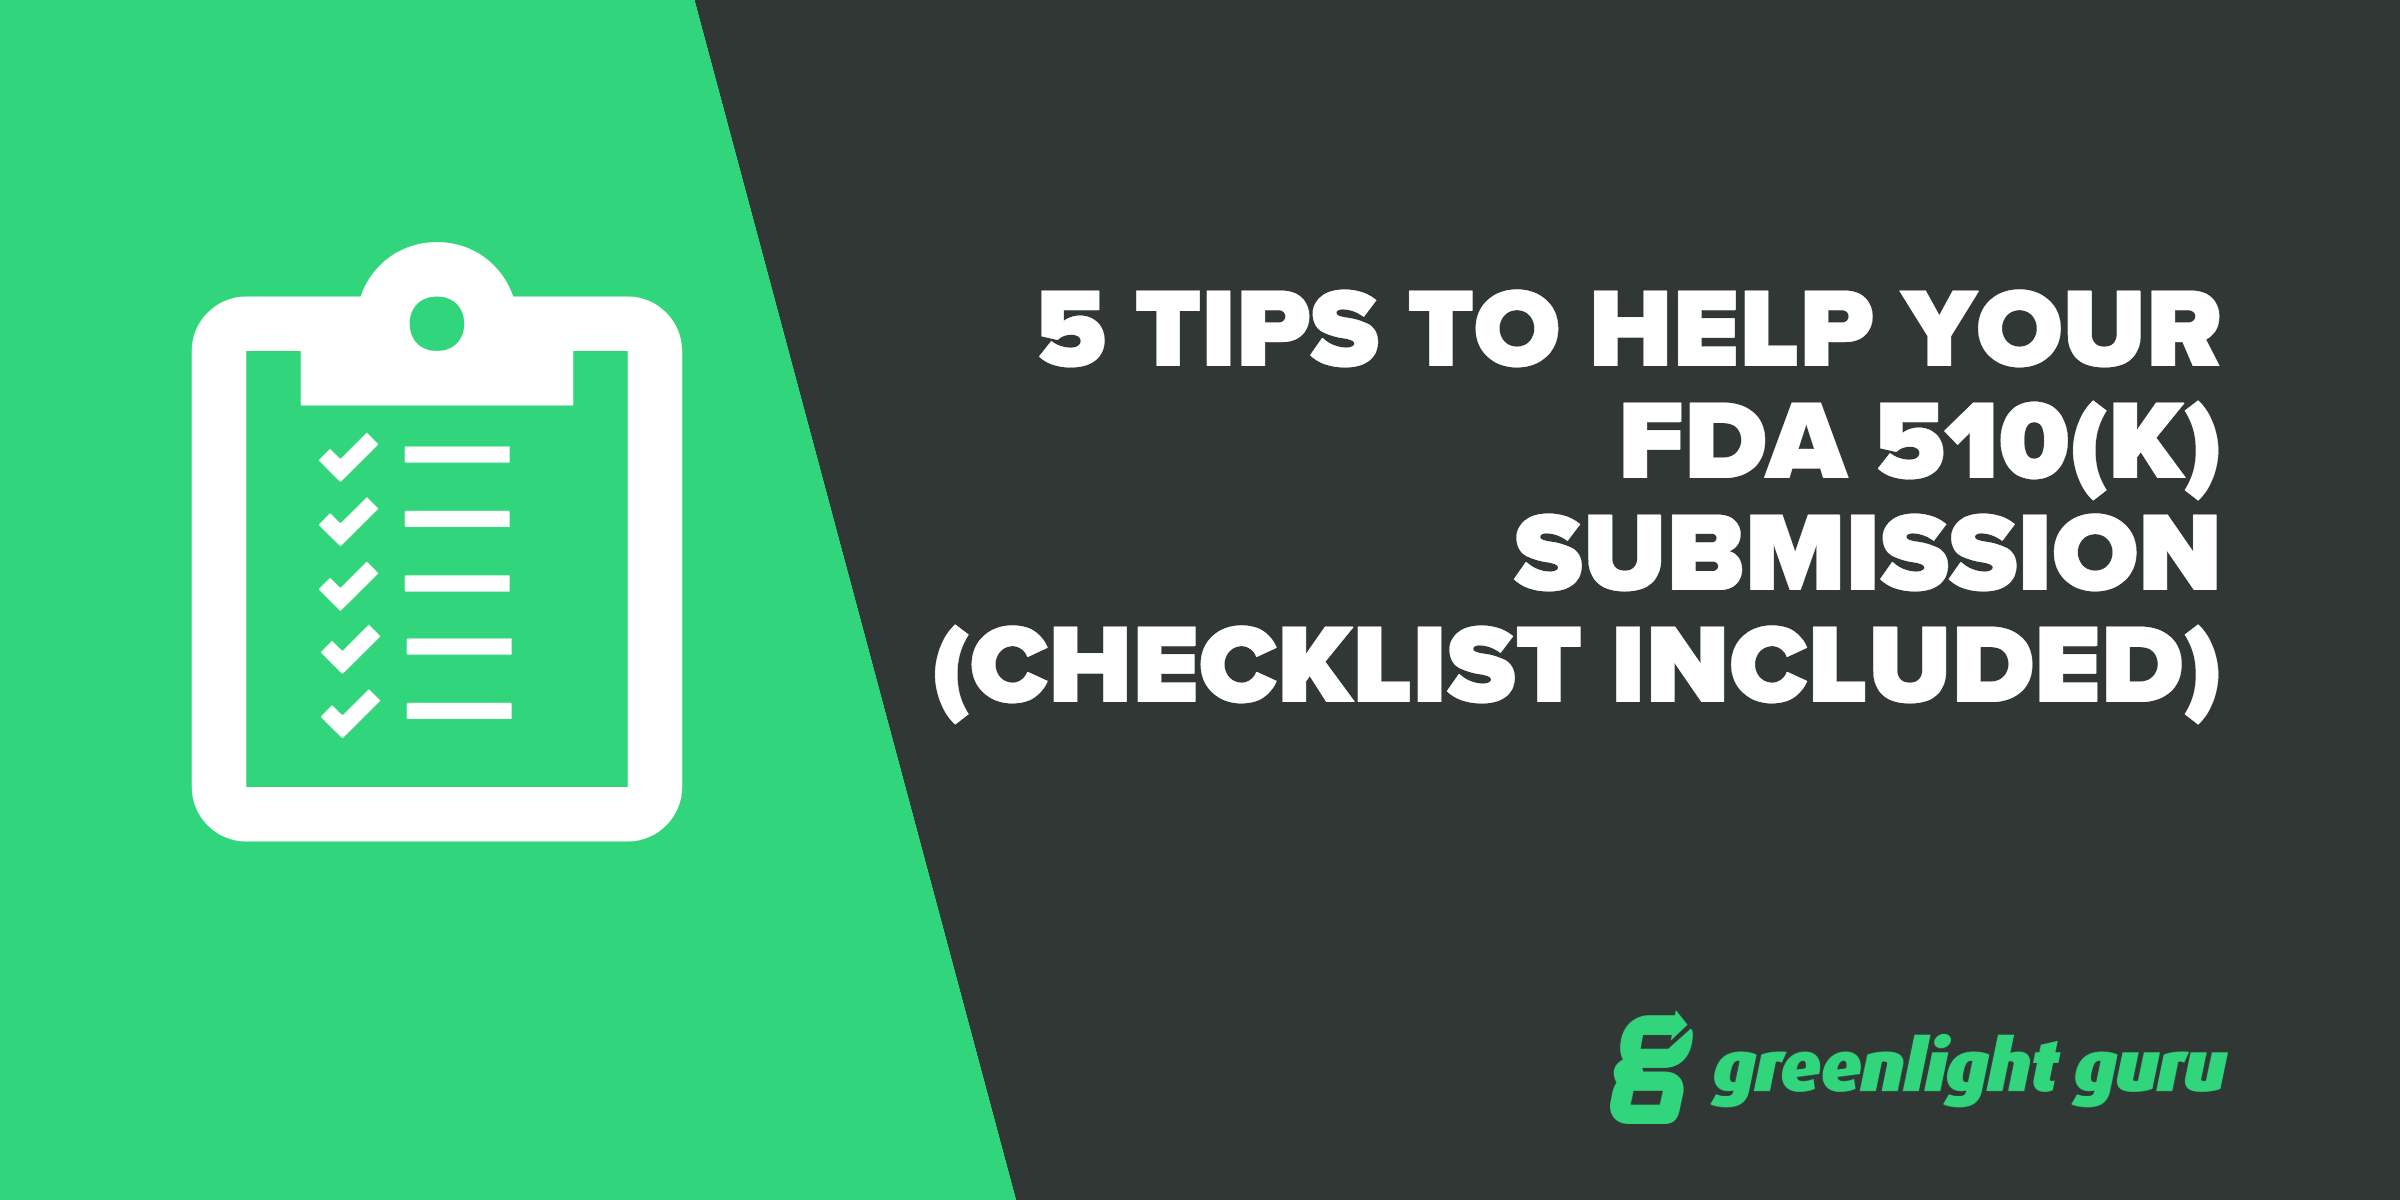 If You Are Developing A Medical Device In The United States There Is A Good Chance Your Path To Market Involves A Fda 510k Submission